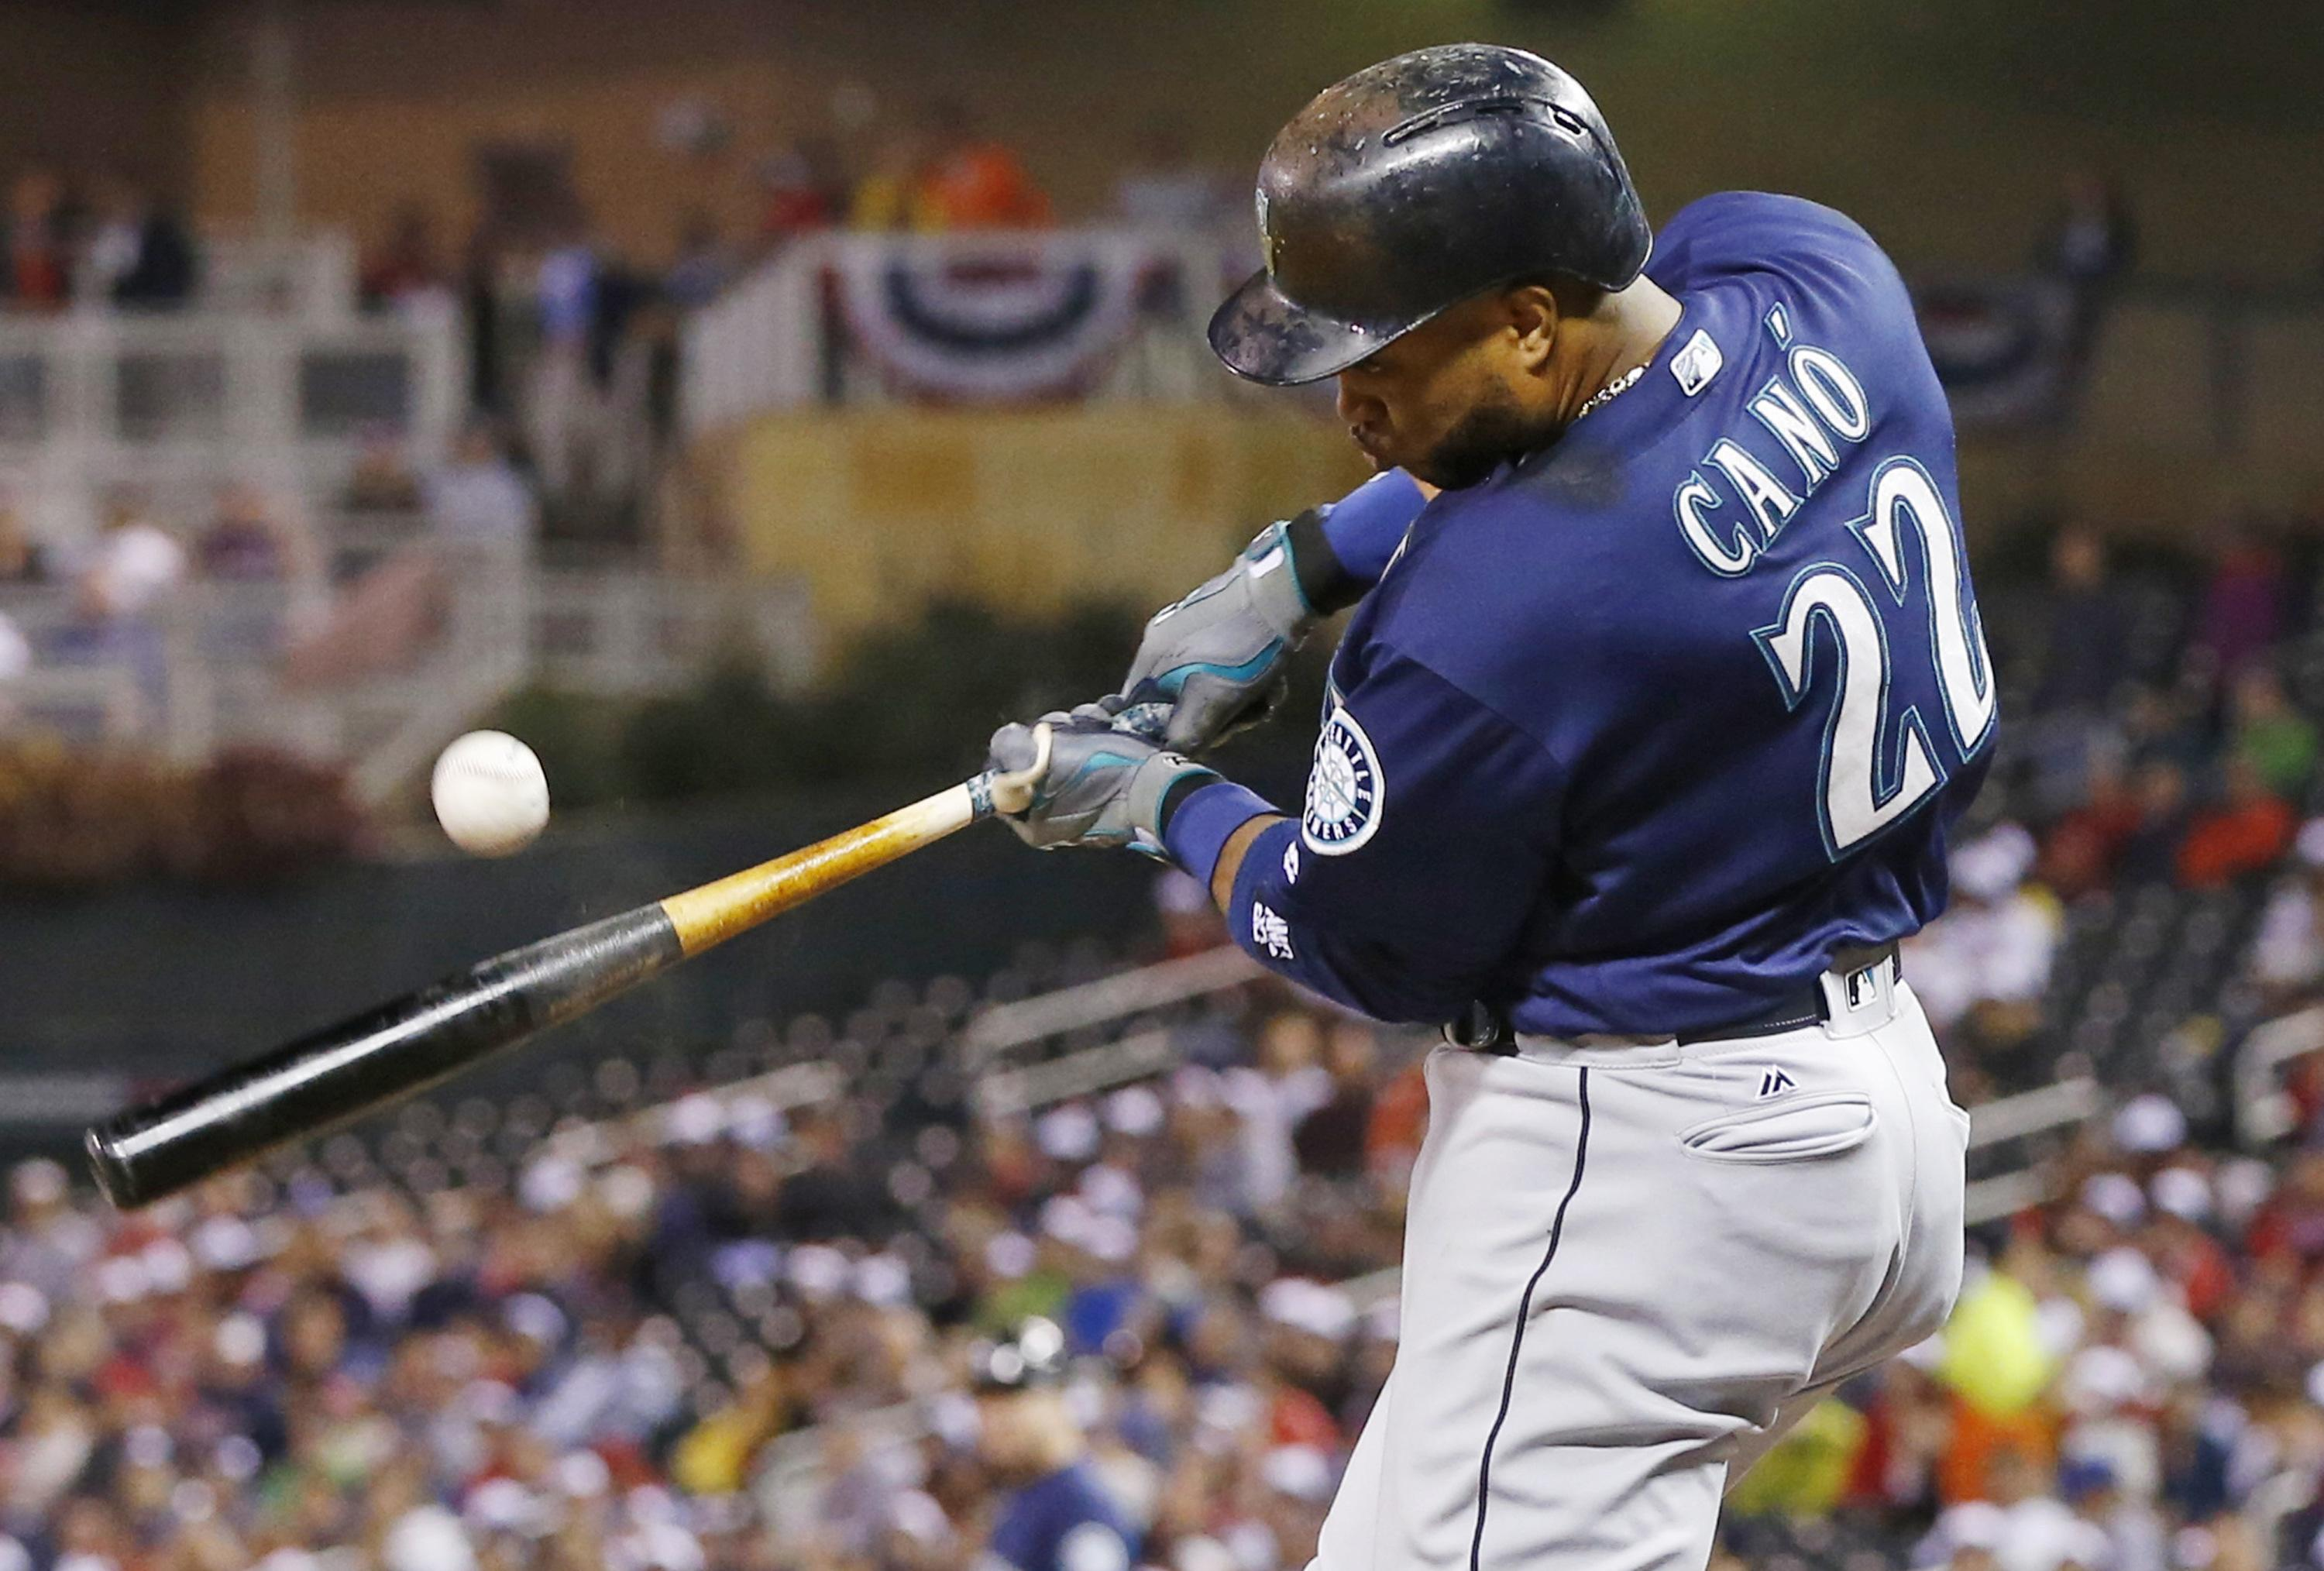 Seattle's Cruz leaves game with wrist soreness